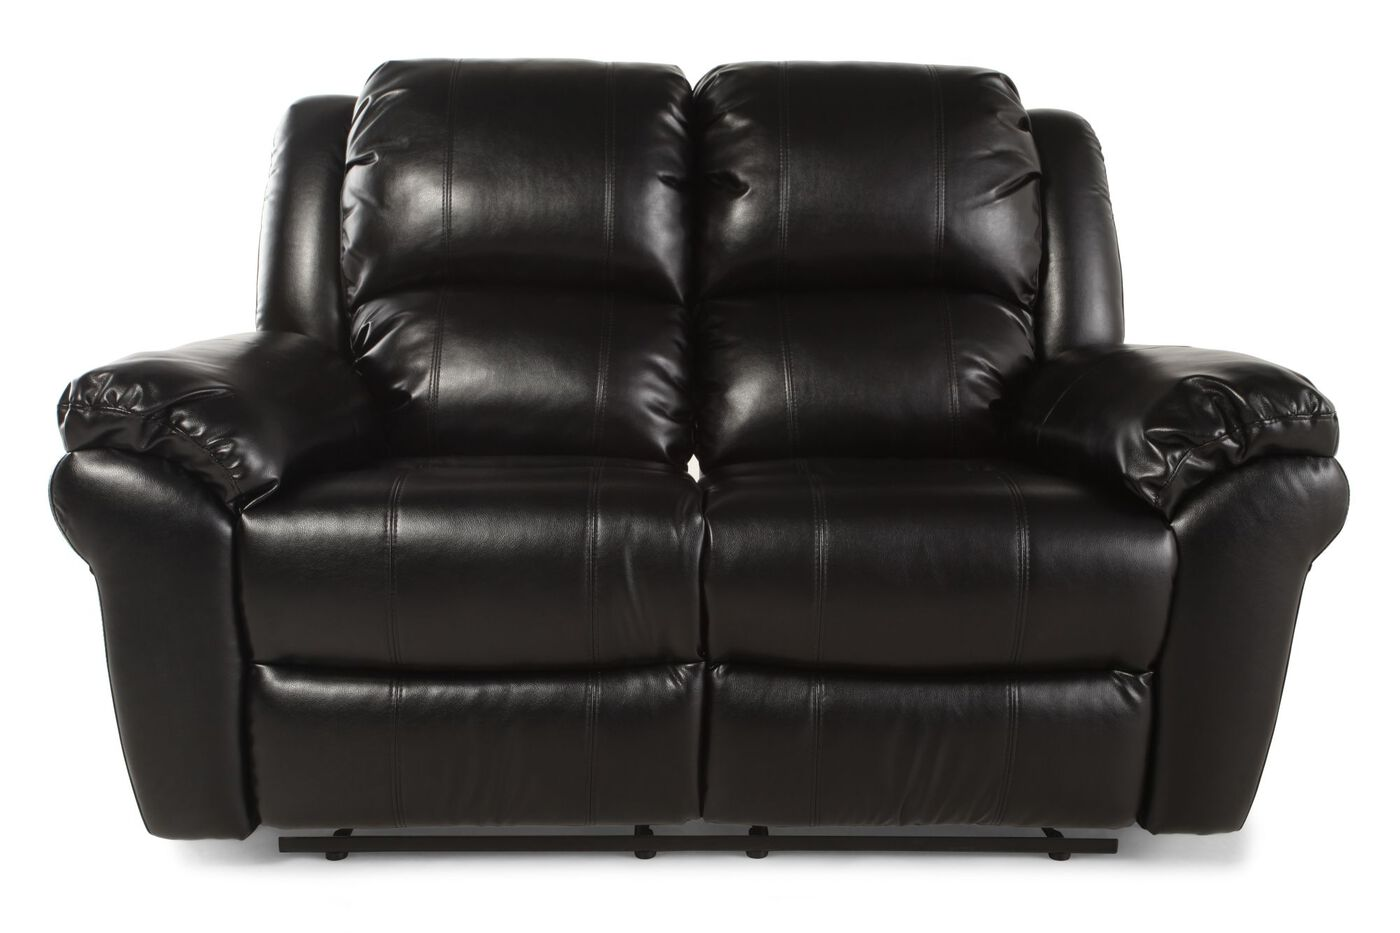 Boulevard Black Motion Reclining Loveseat Mathis Brothers Furniture